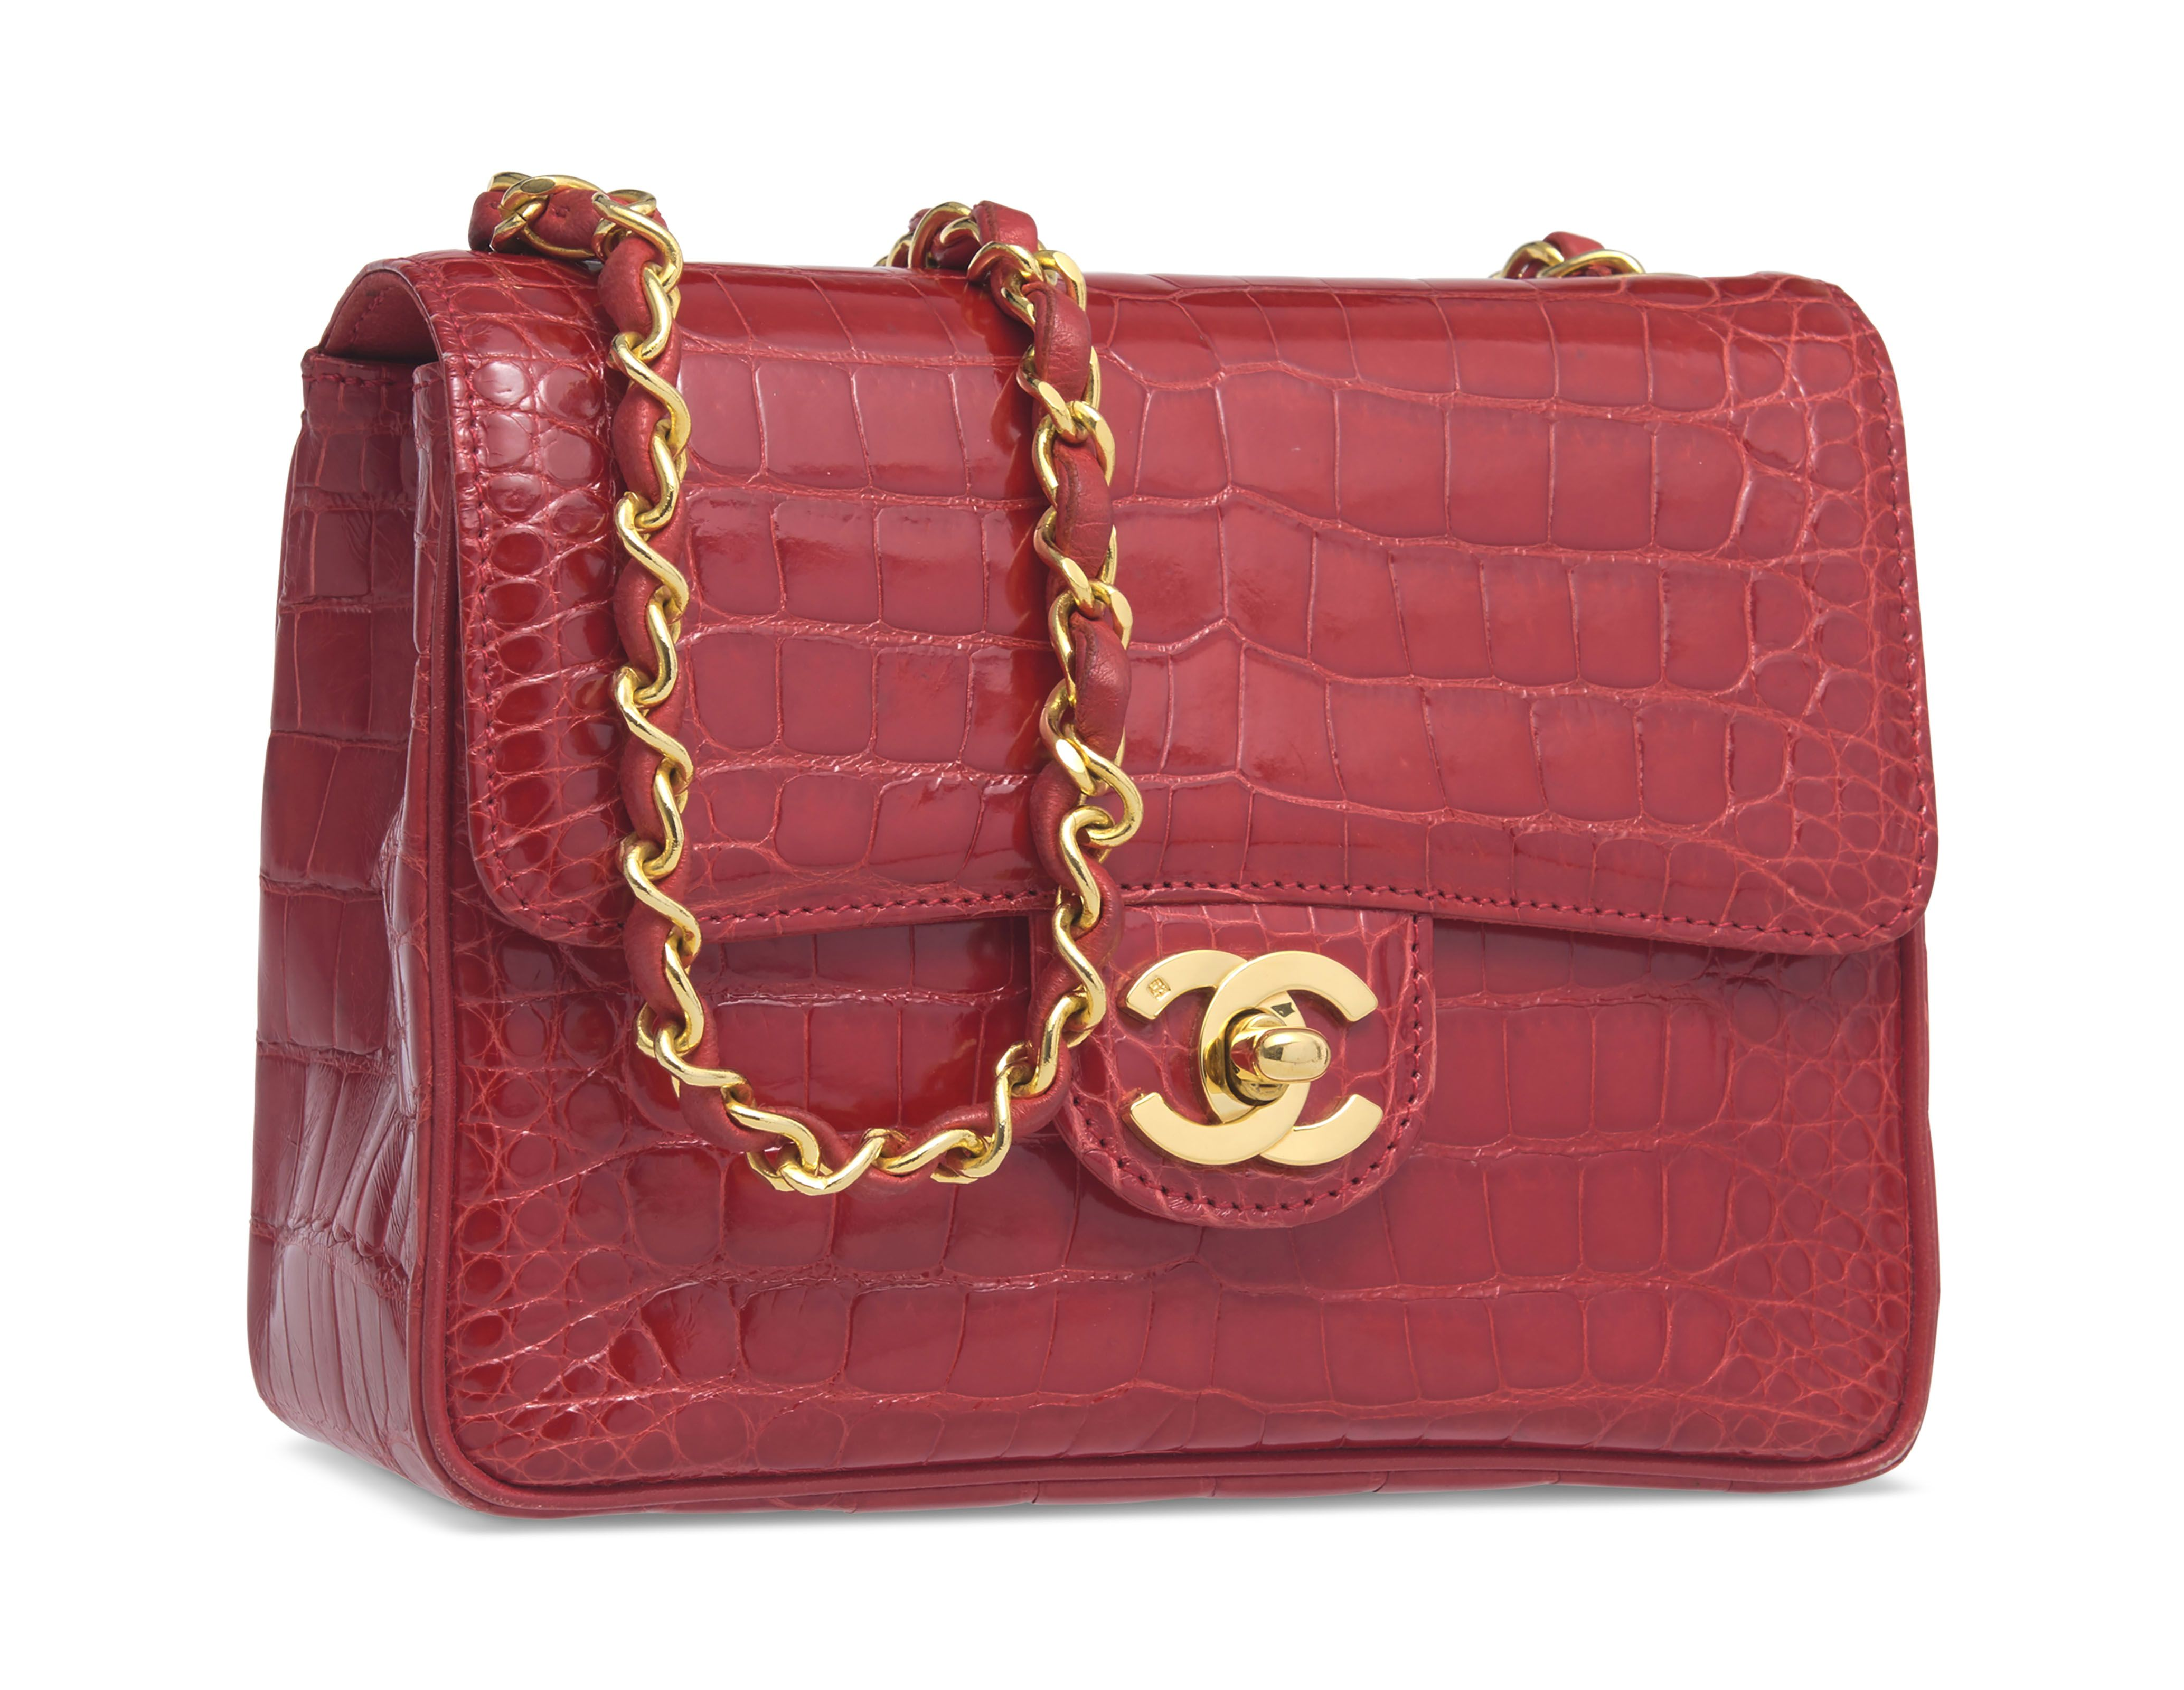 A Shiny Red Alligator Mini Flap Bag With Gold Hardware Chanel Burberry Handbags Flap Bag